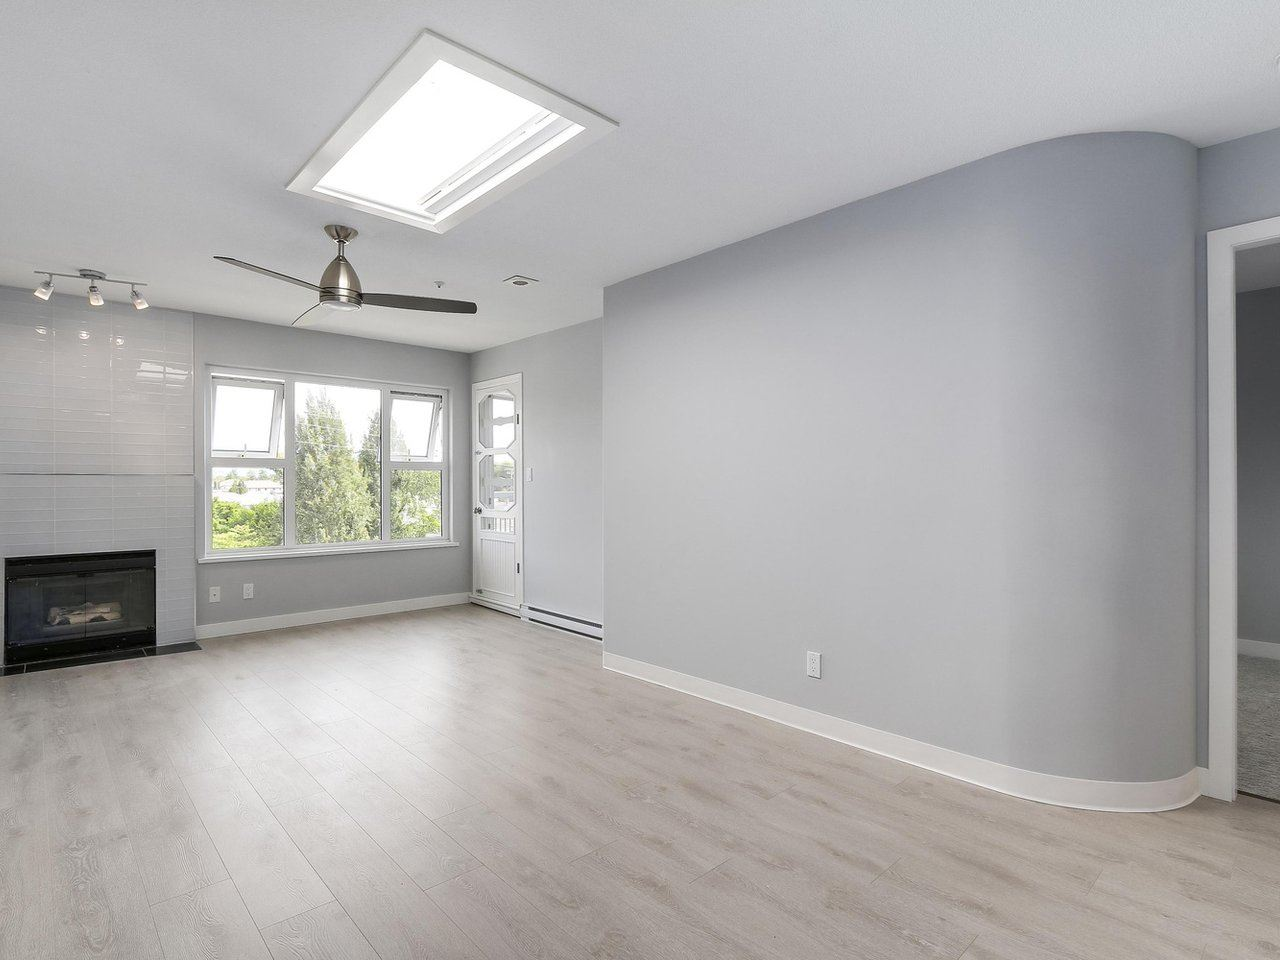 Condo Apartment at 312 4893 CLARENDON STREET, Unit 312, Vancouver East, British Columbia. Image 3